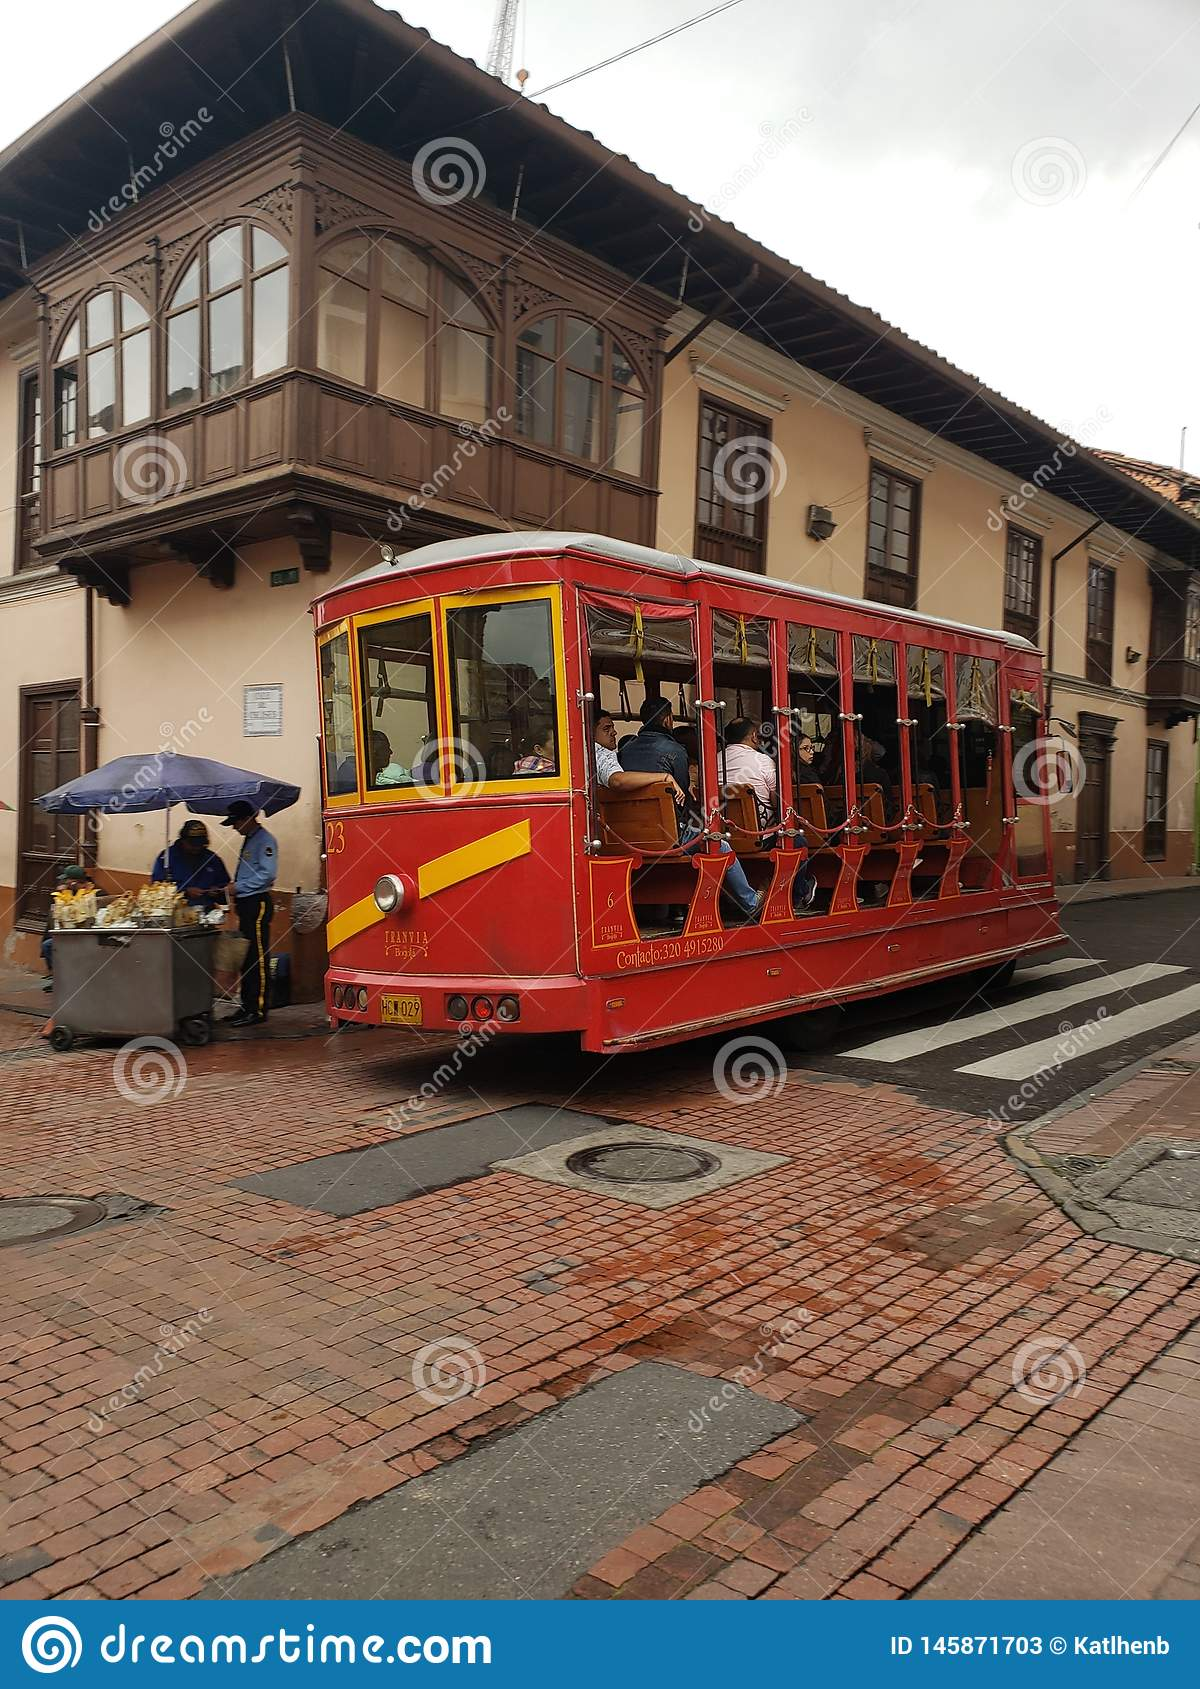 trolly cars Getty Images